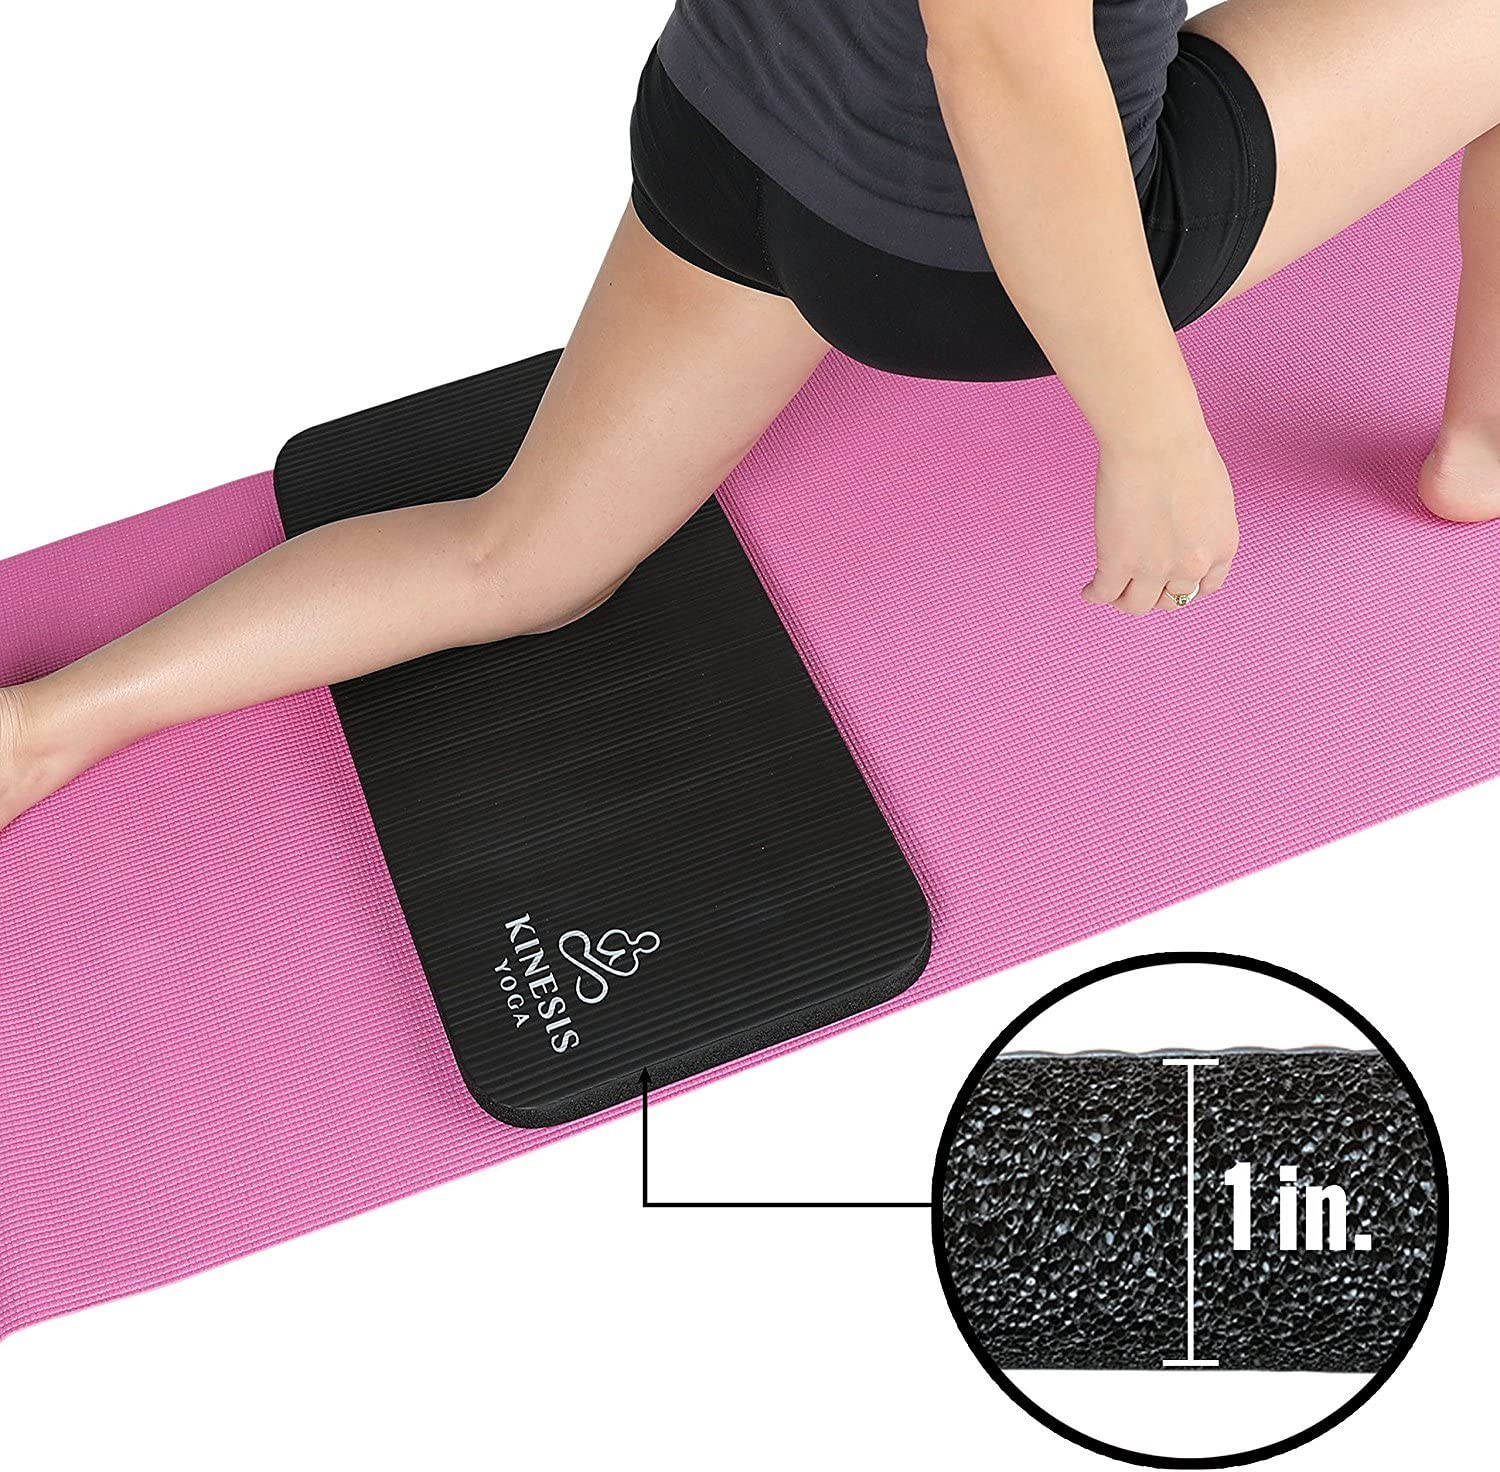 Amazon Com Kinesis Yoga Knee Pad Cushion Extra Thick 1 W Free Bag Sports Outdoors